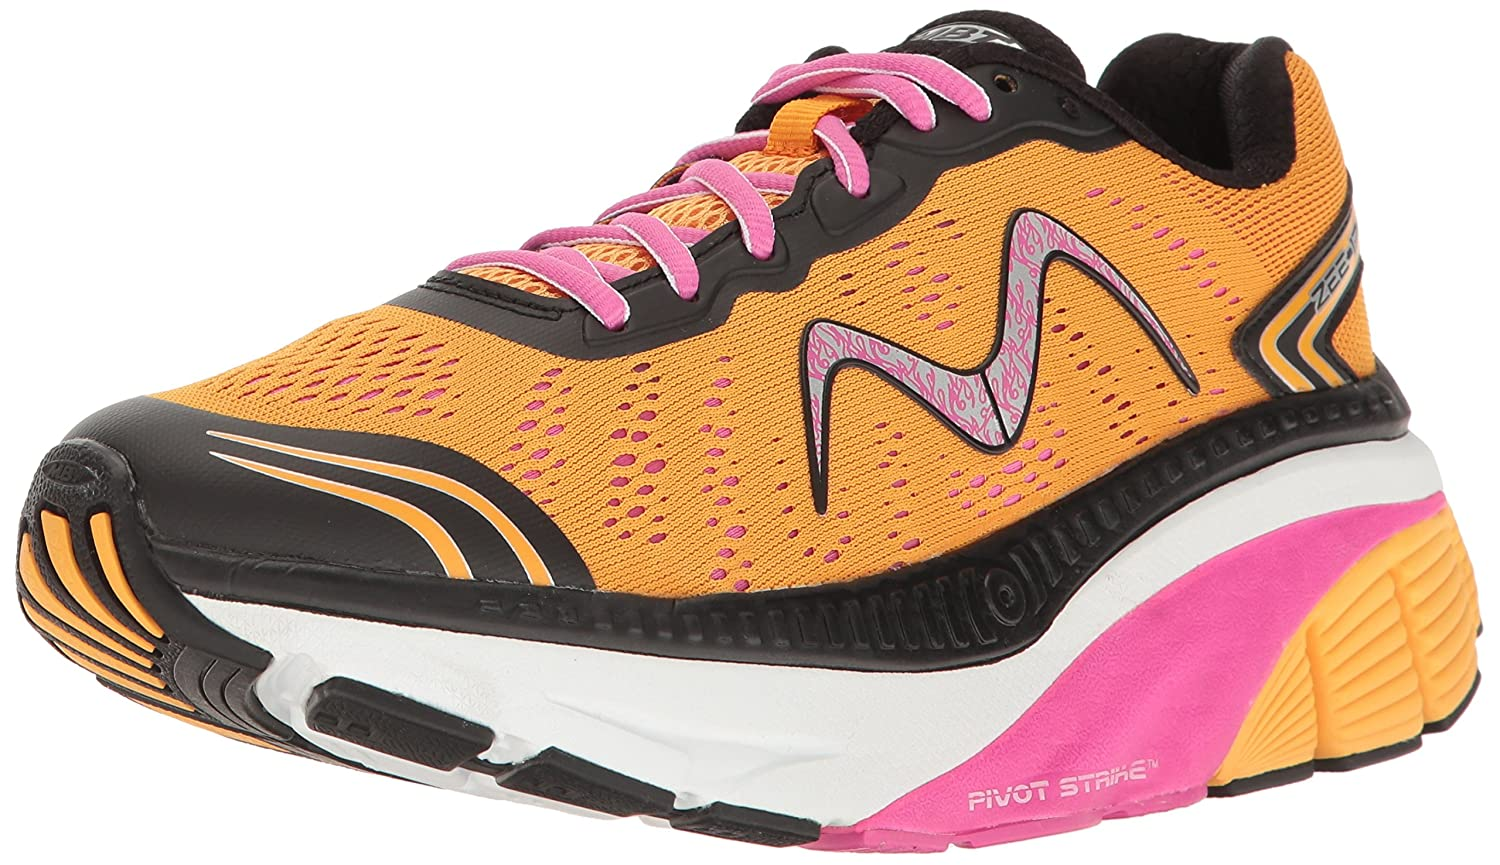 MBT Women's Zee 17 W Sneaker B01N1477O2 12 B(M) US|Orange/Pink/Black/White